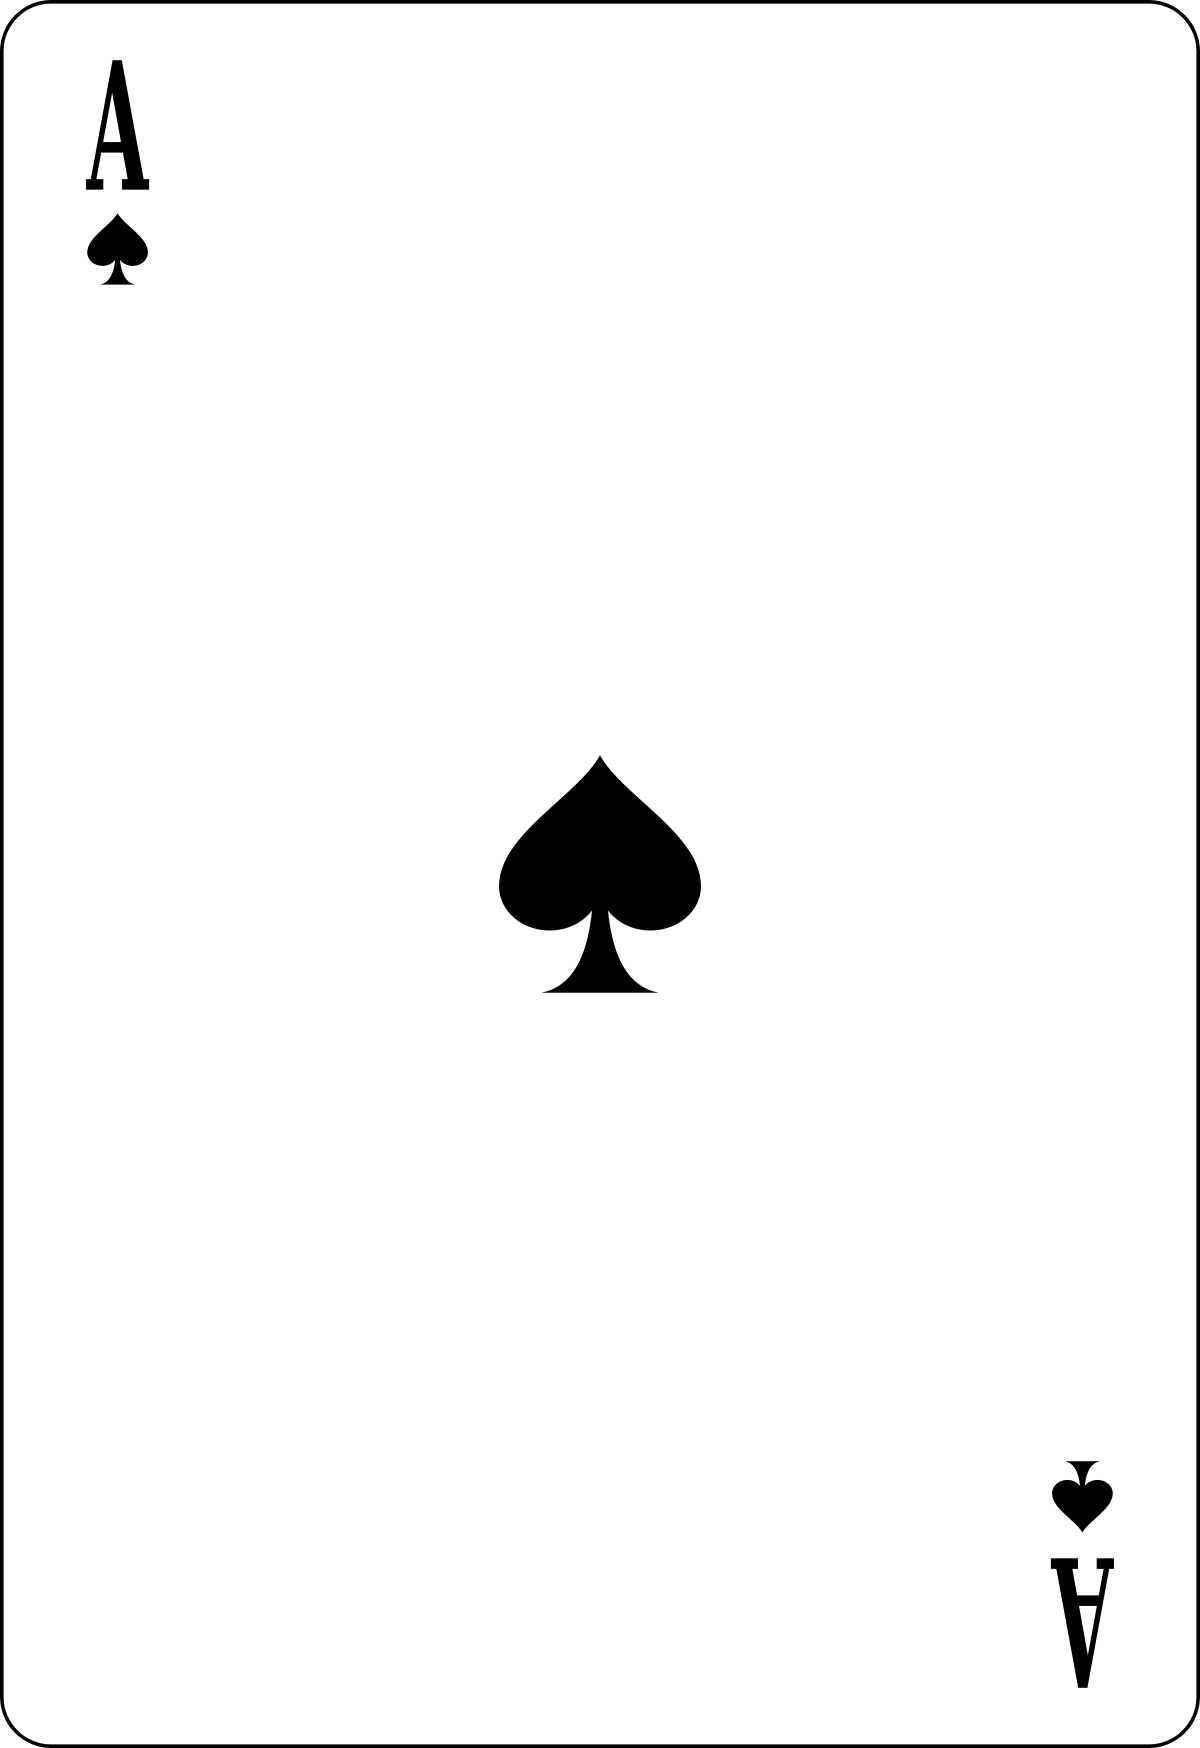 Ace Card PNG - 25986